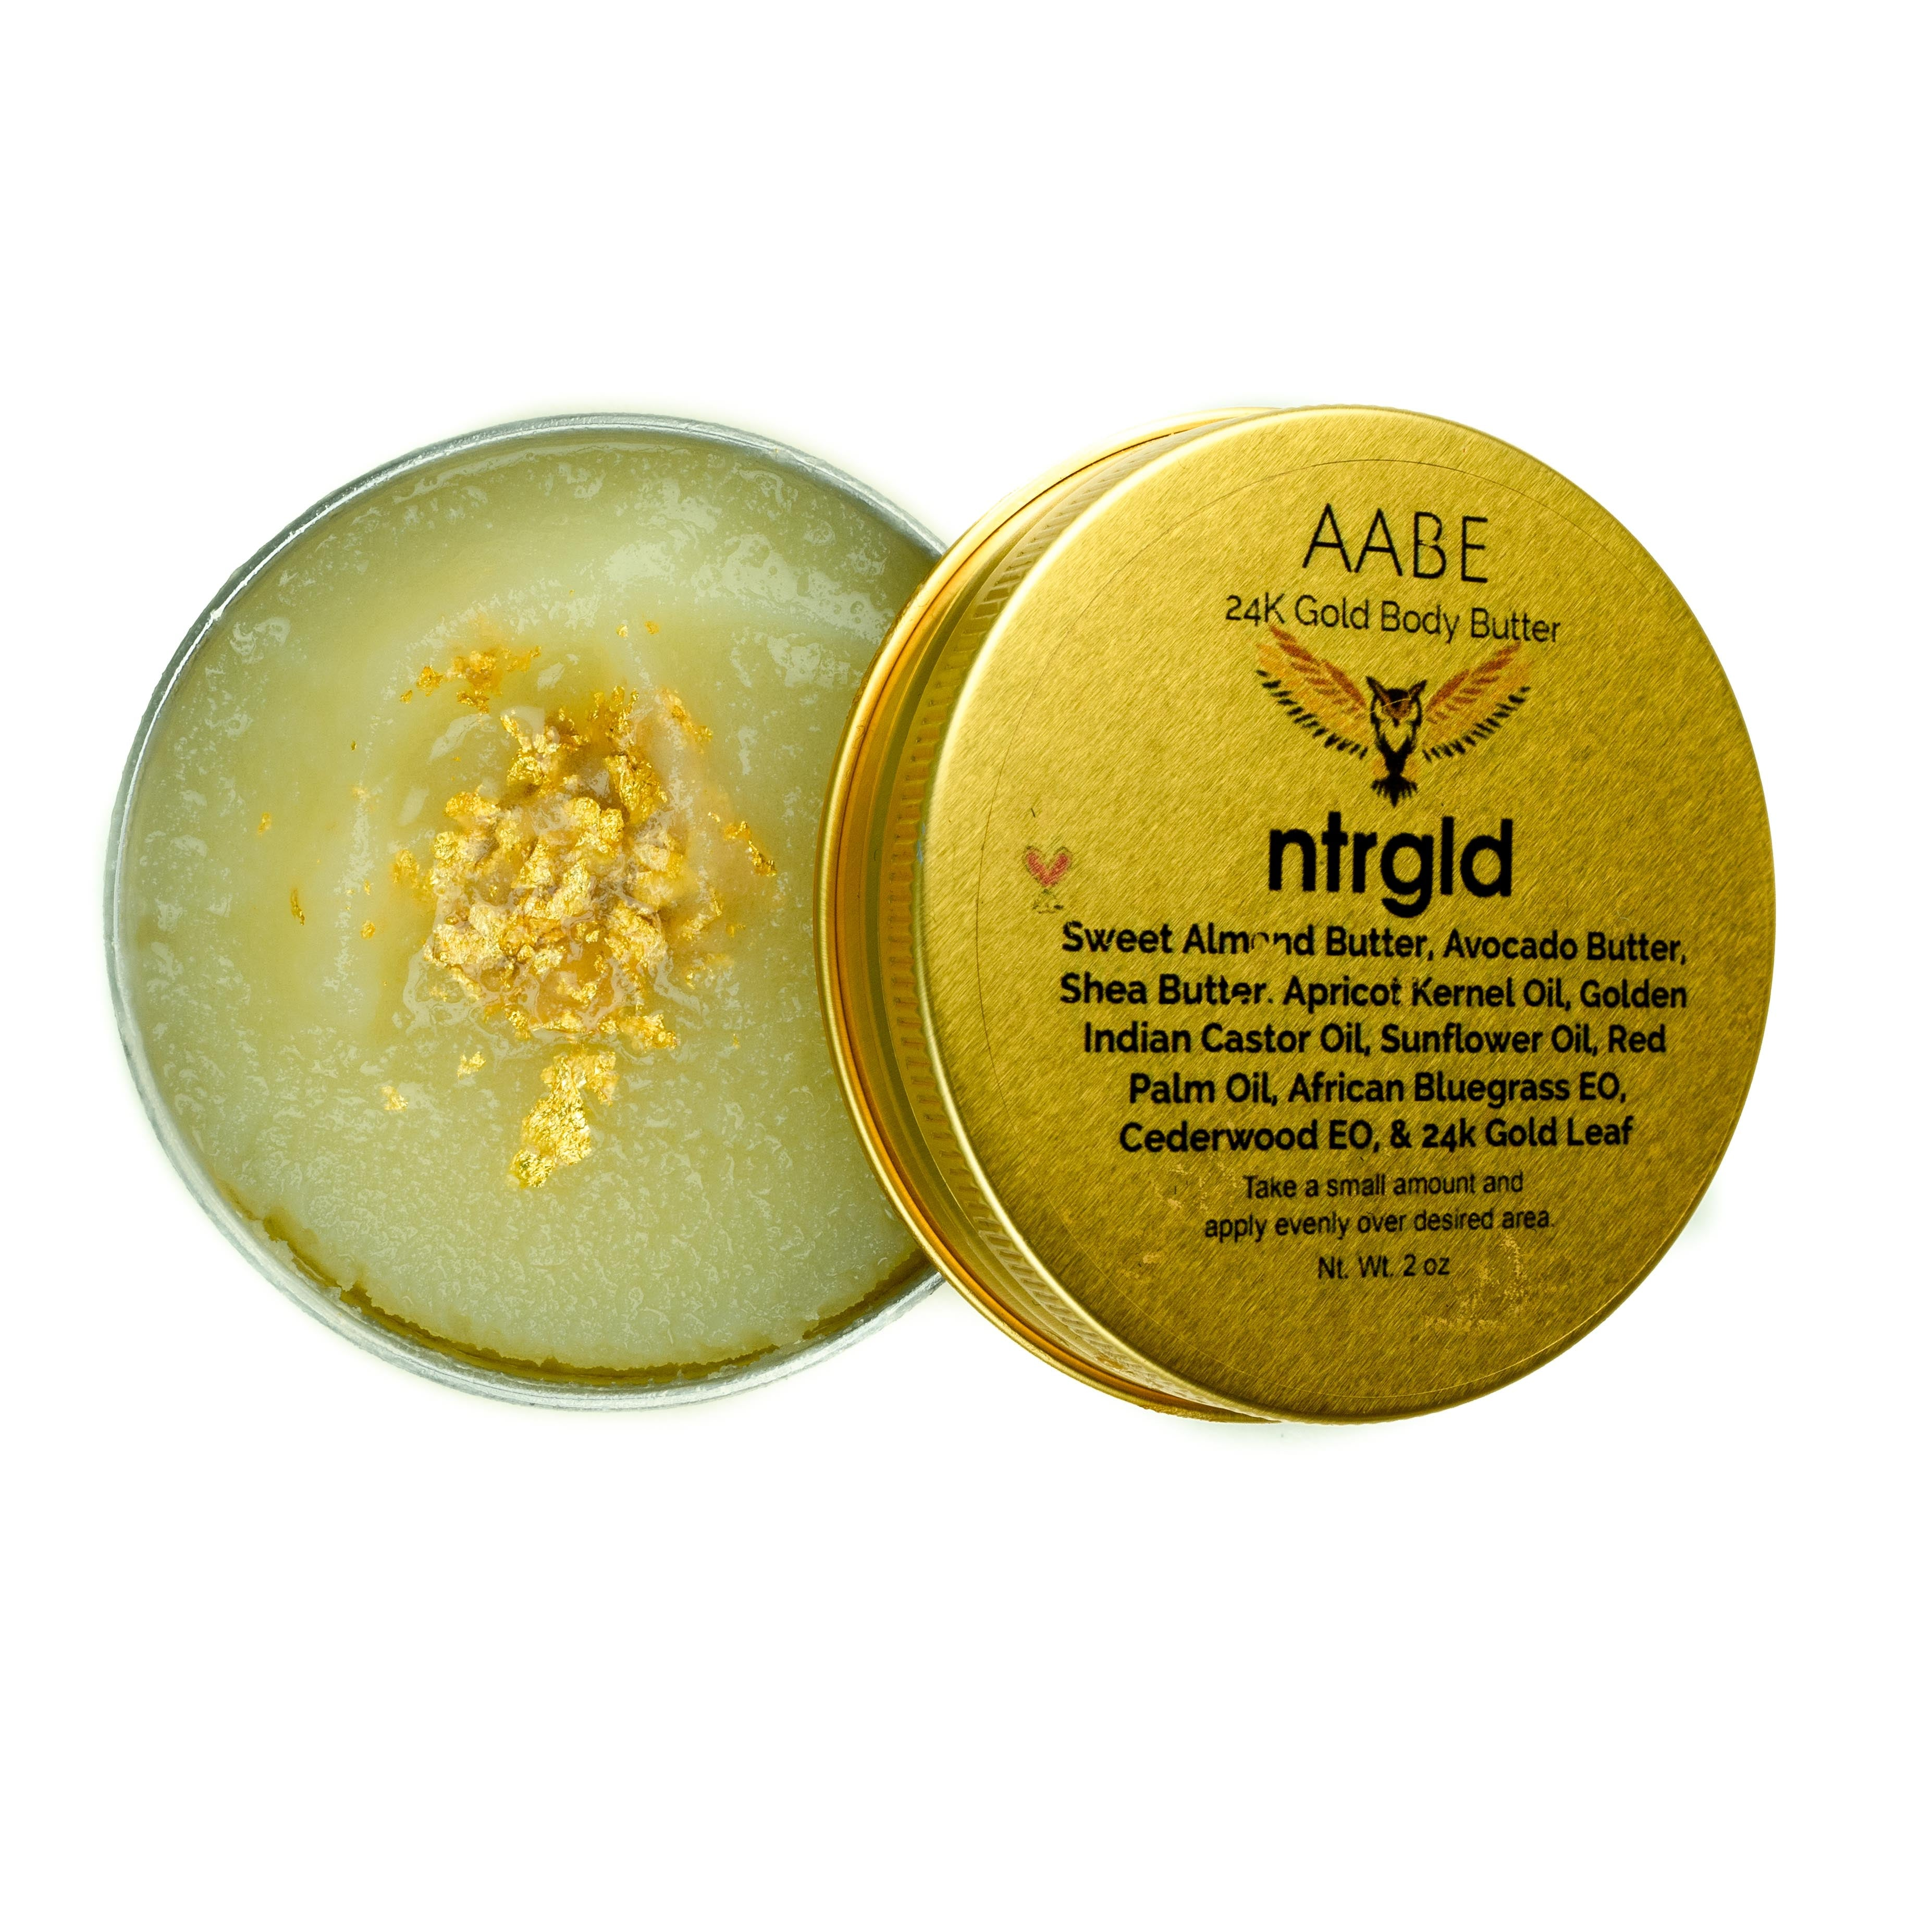 AABE - 24k Gold Hair & Body Butter (Limited Edition)